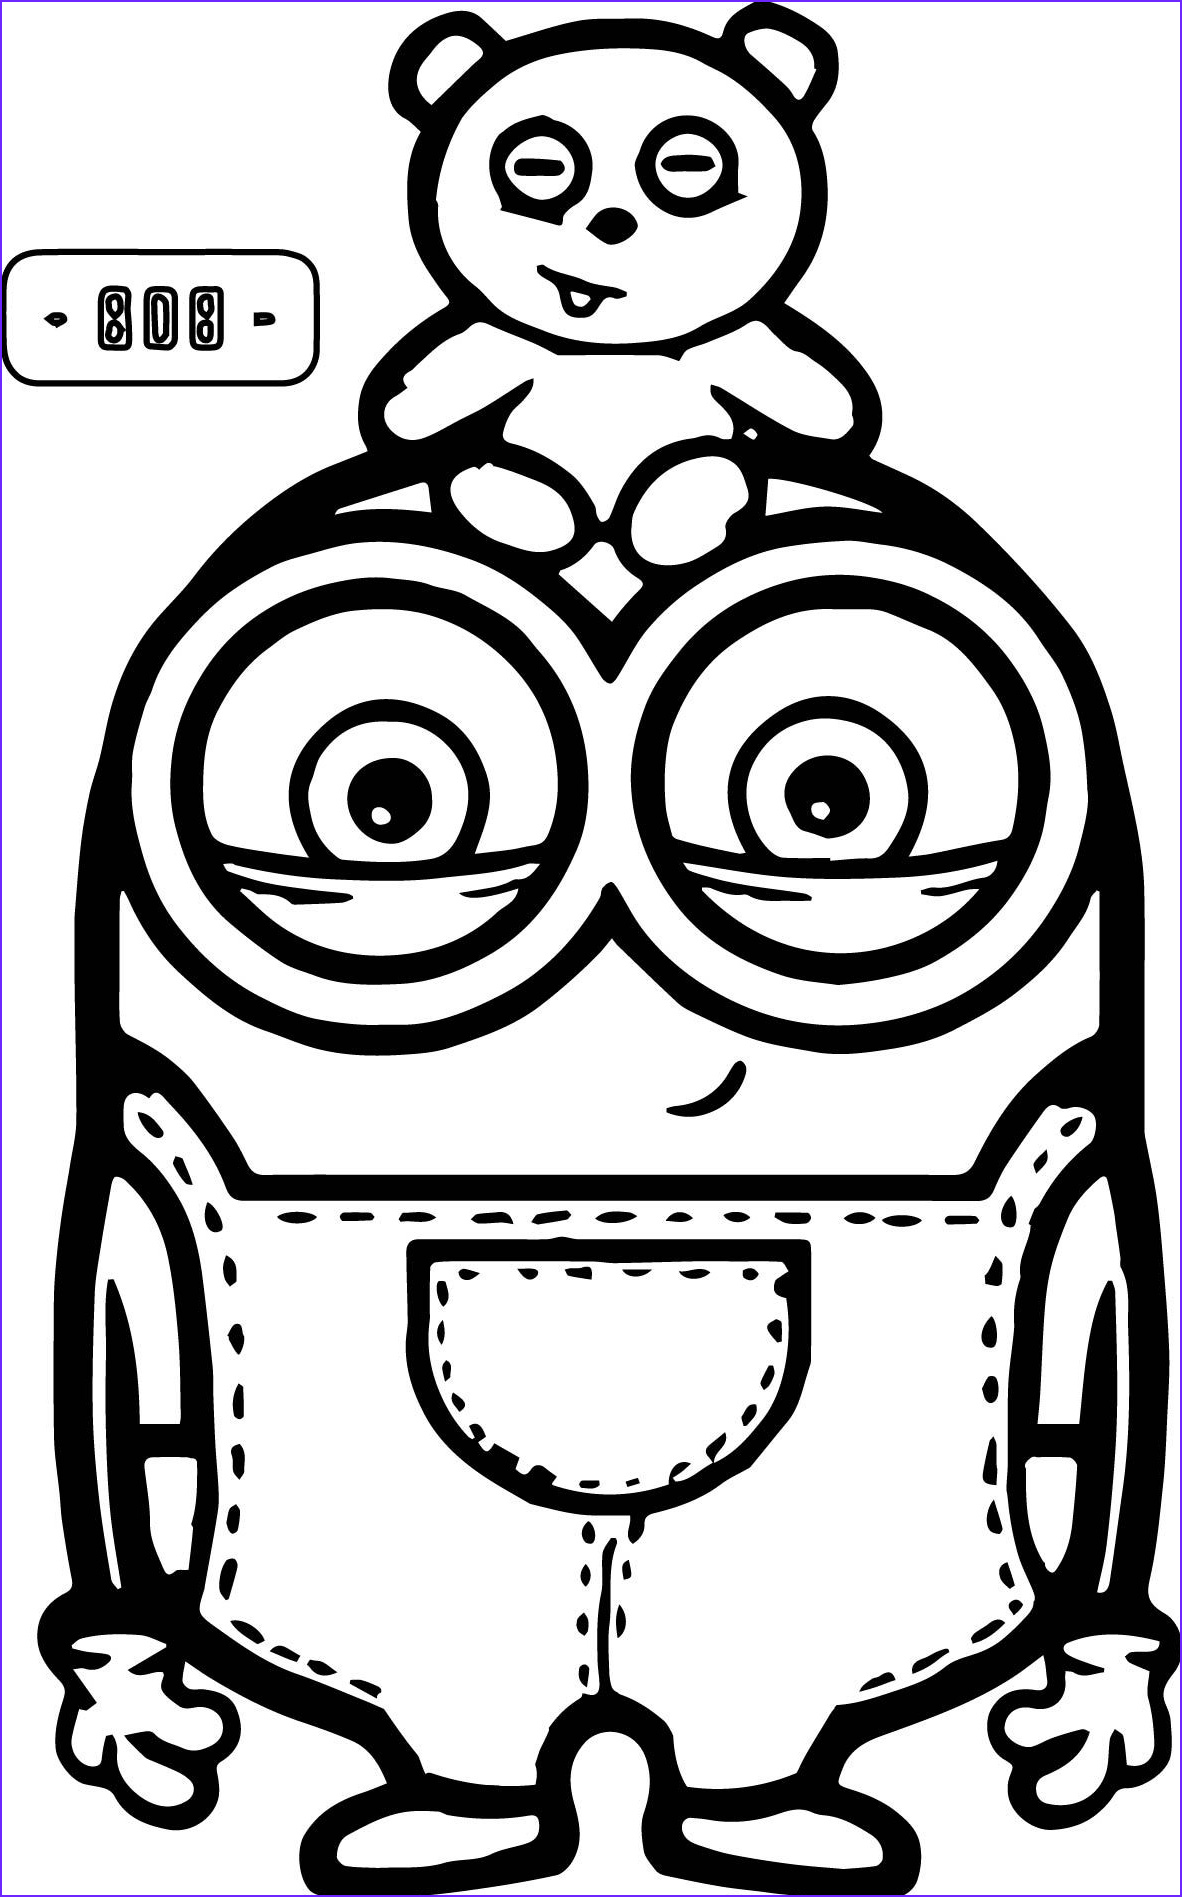 Minion Coloring Sheets New Images Cute Bob and Bear Minions Coloring Page